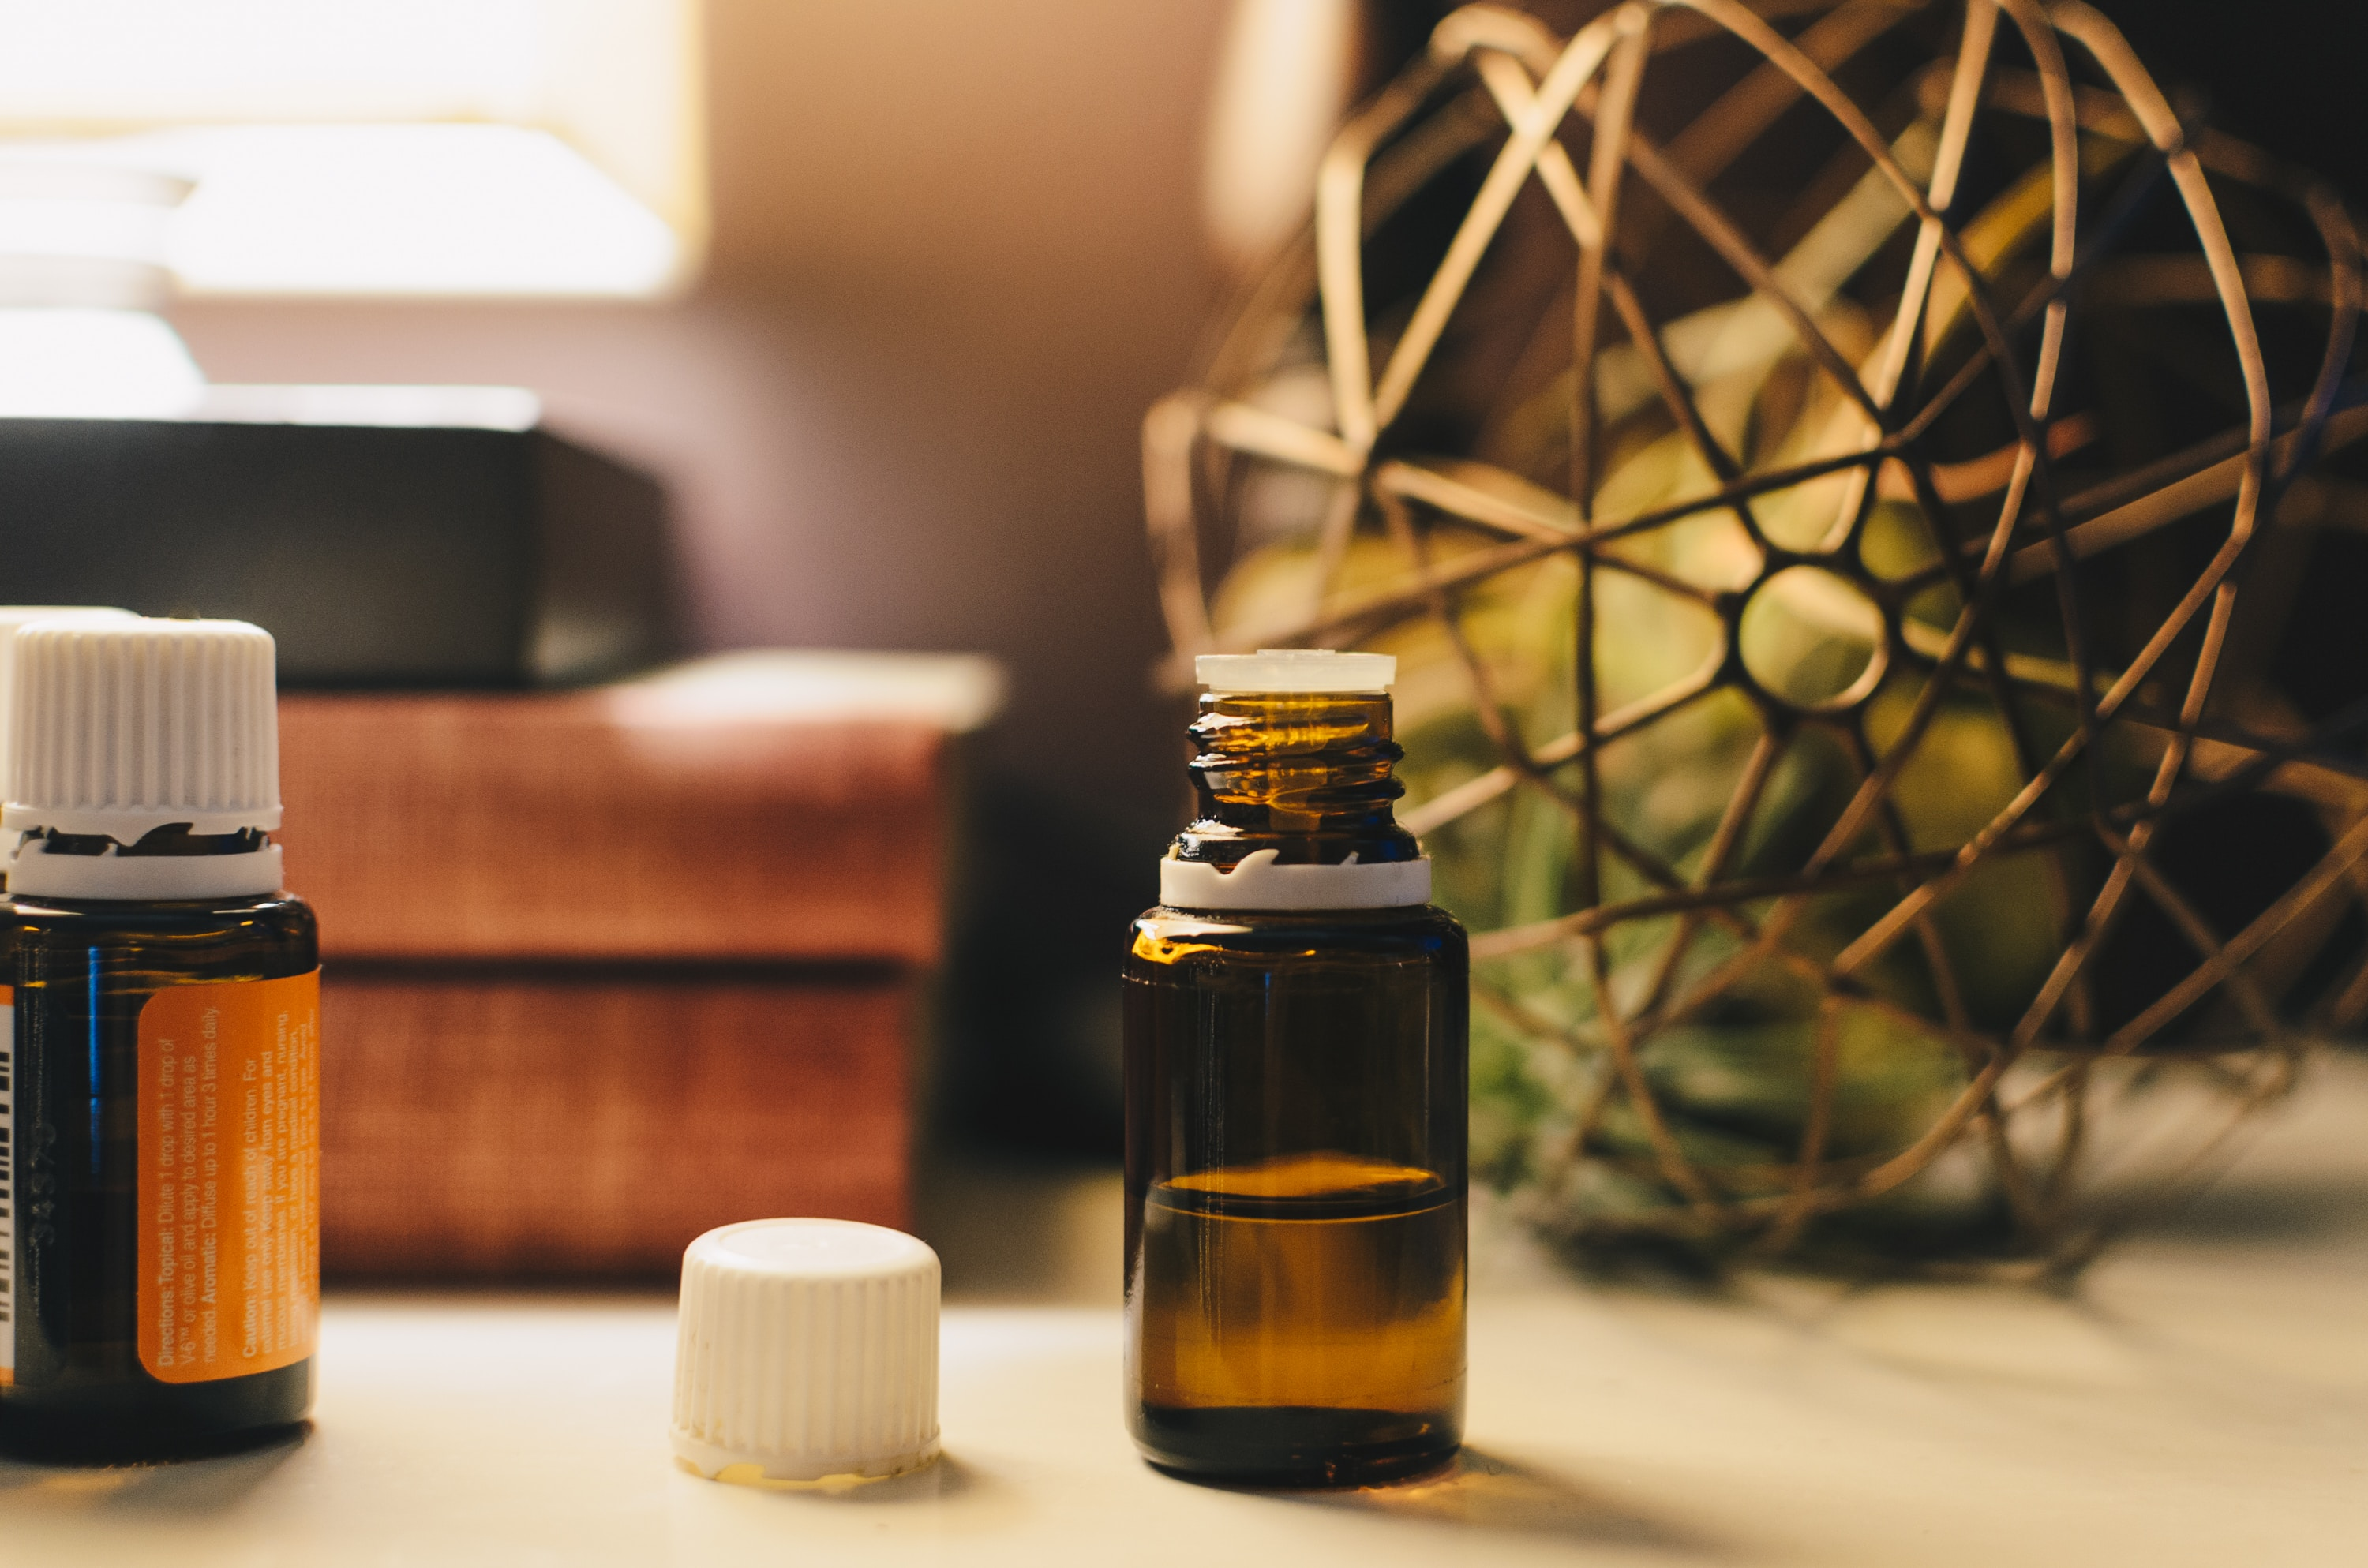 Health professionals and complementary therapies: what can consumers reasonably expect?